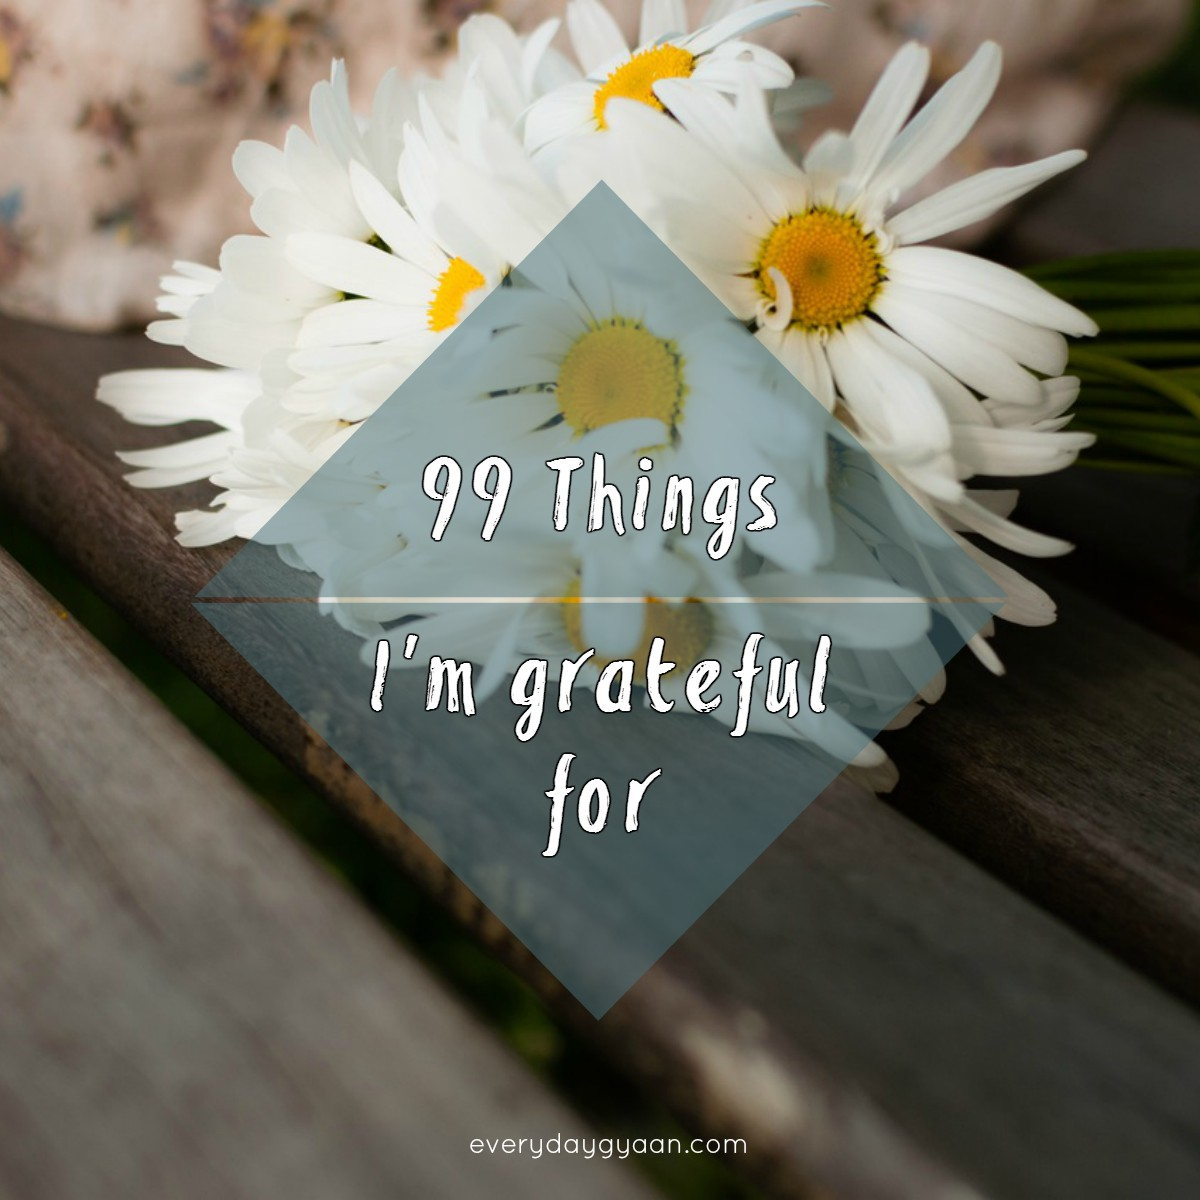 99-things-i-am-grateful-for